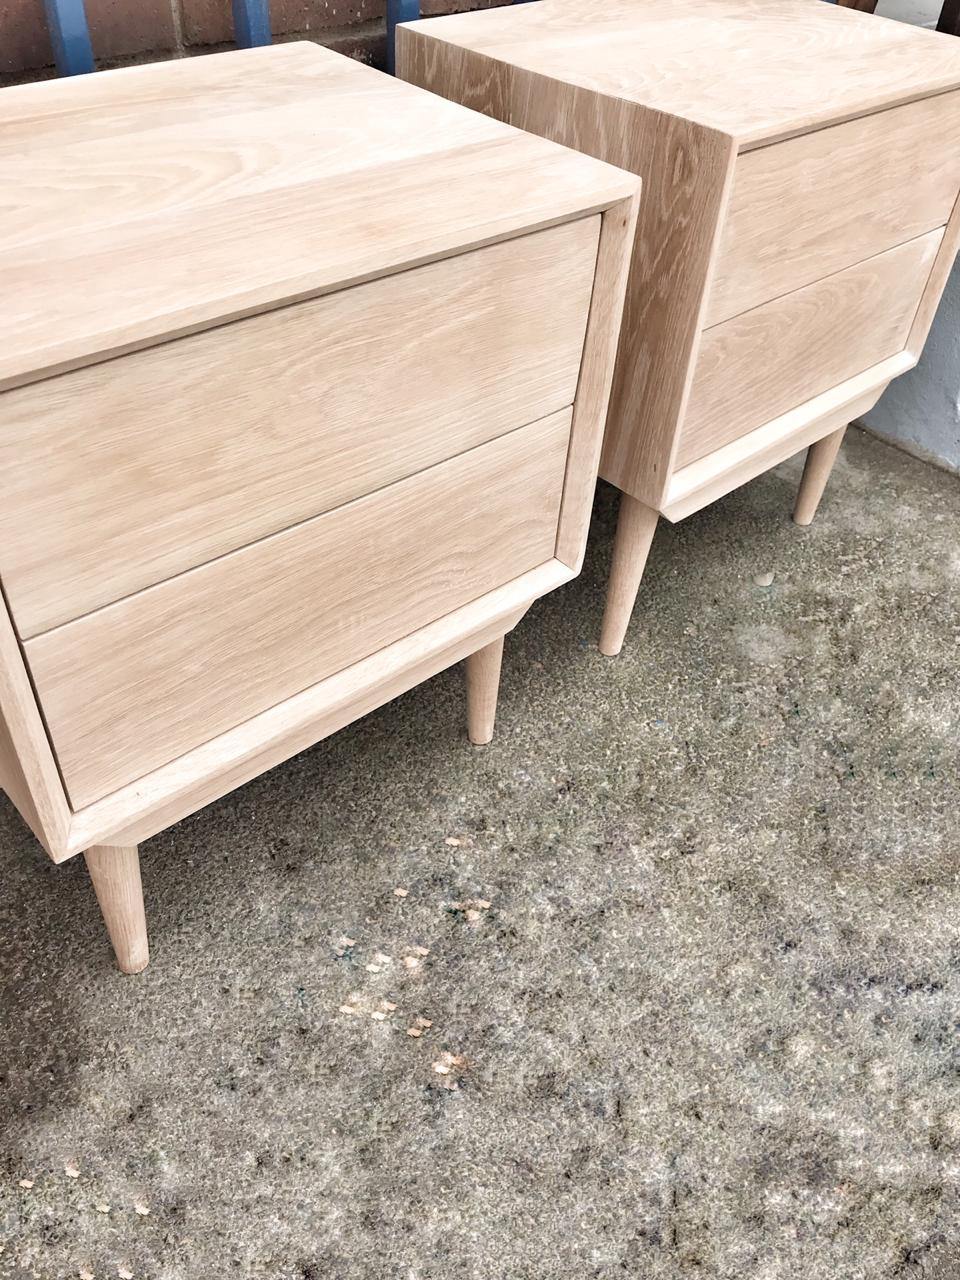 Oak bedside tables or pedestals